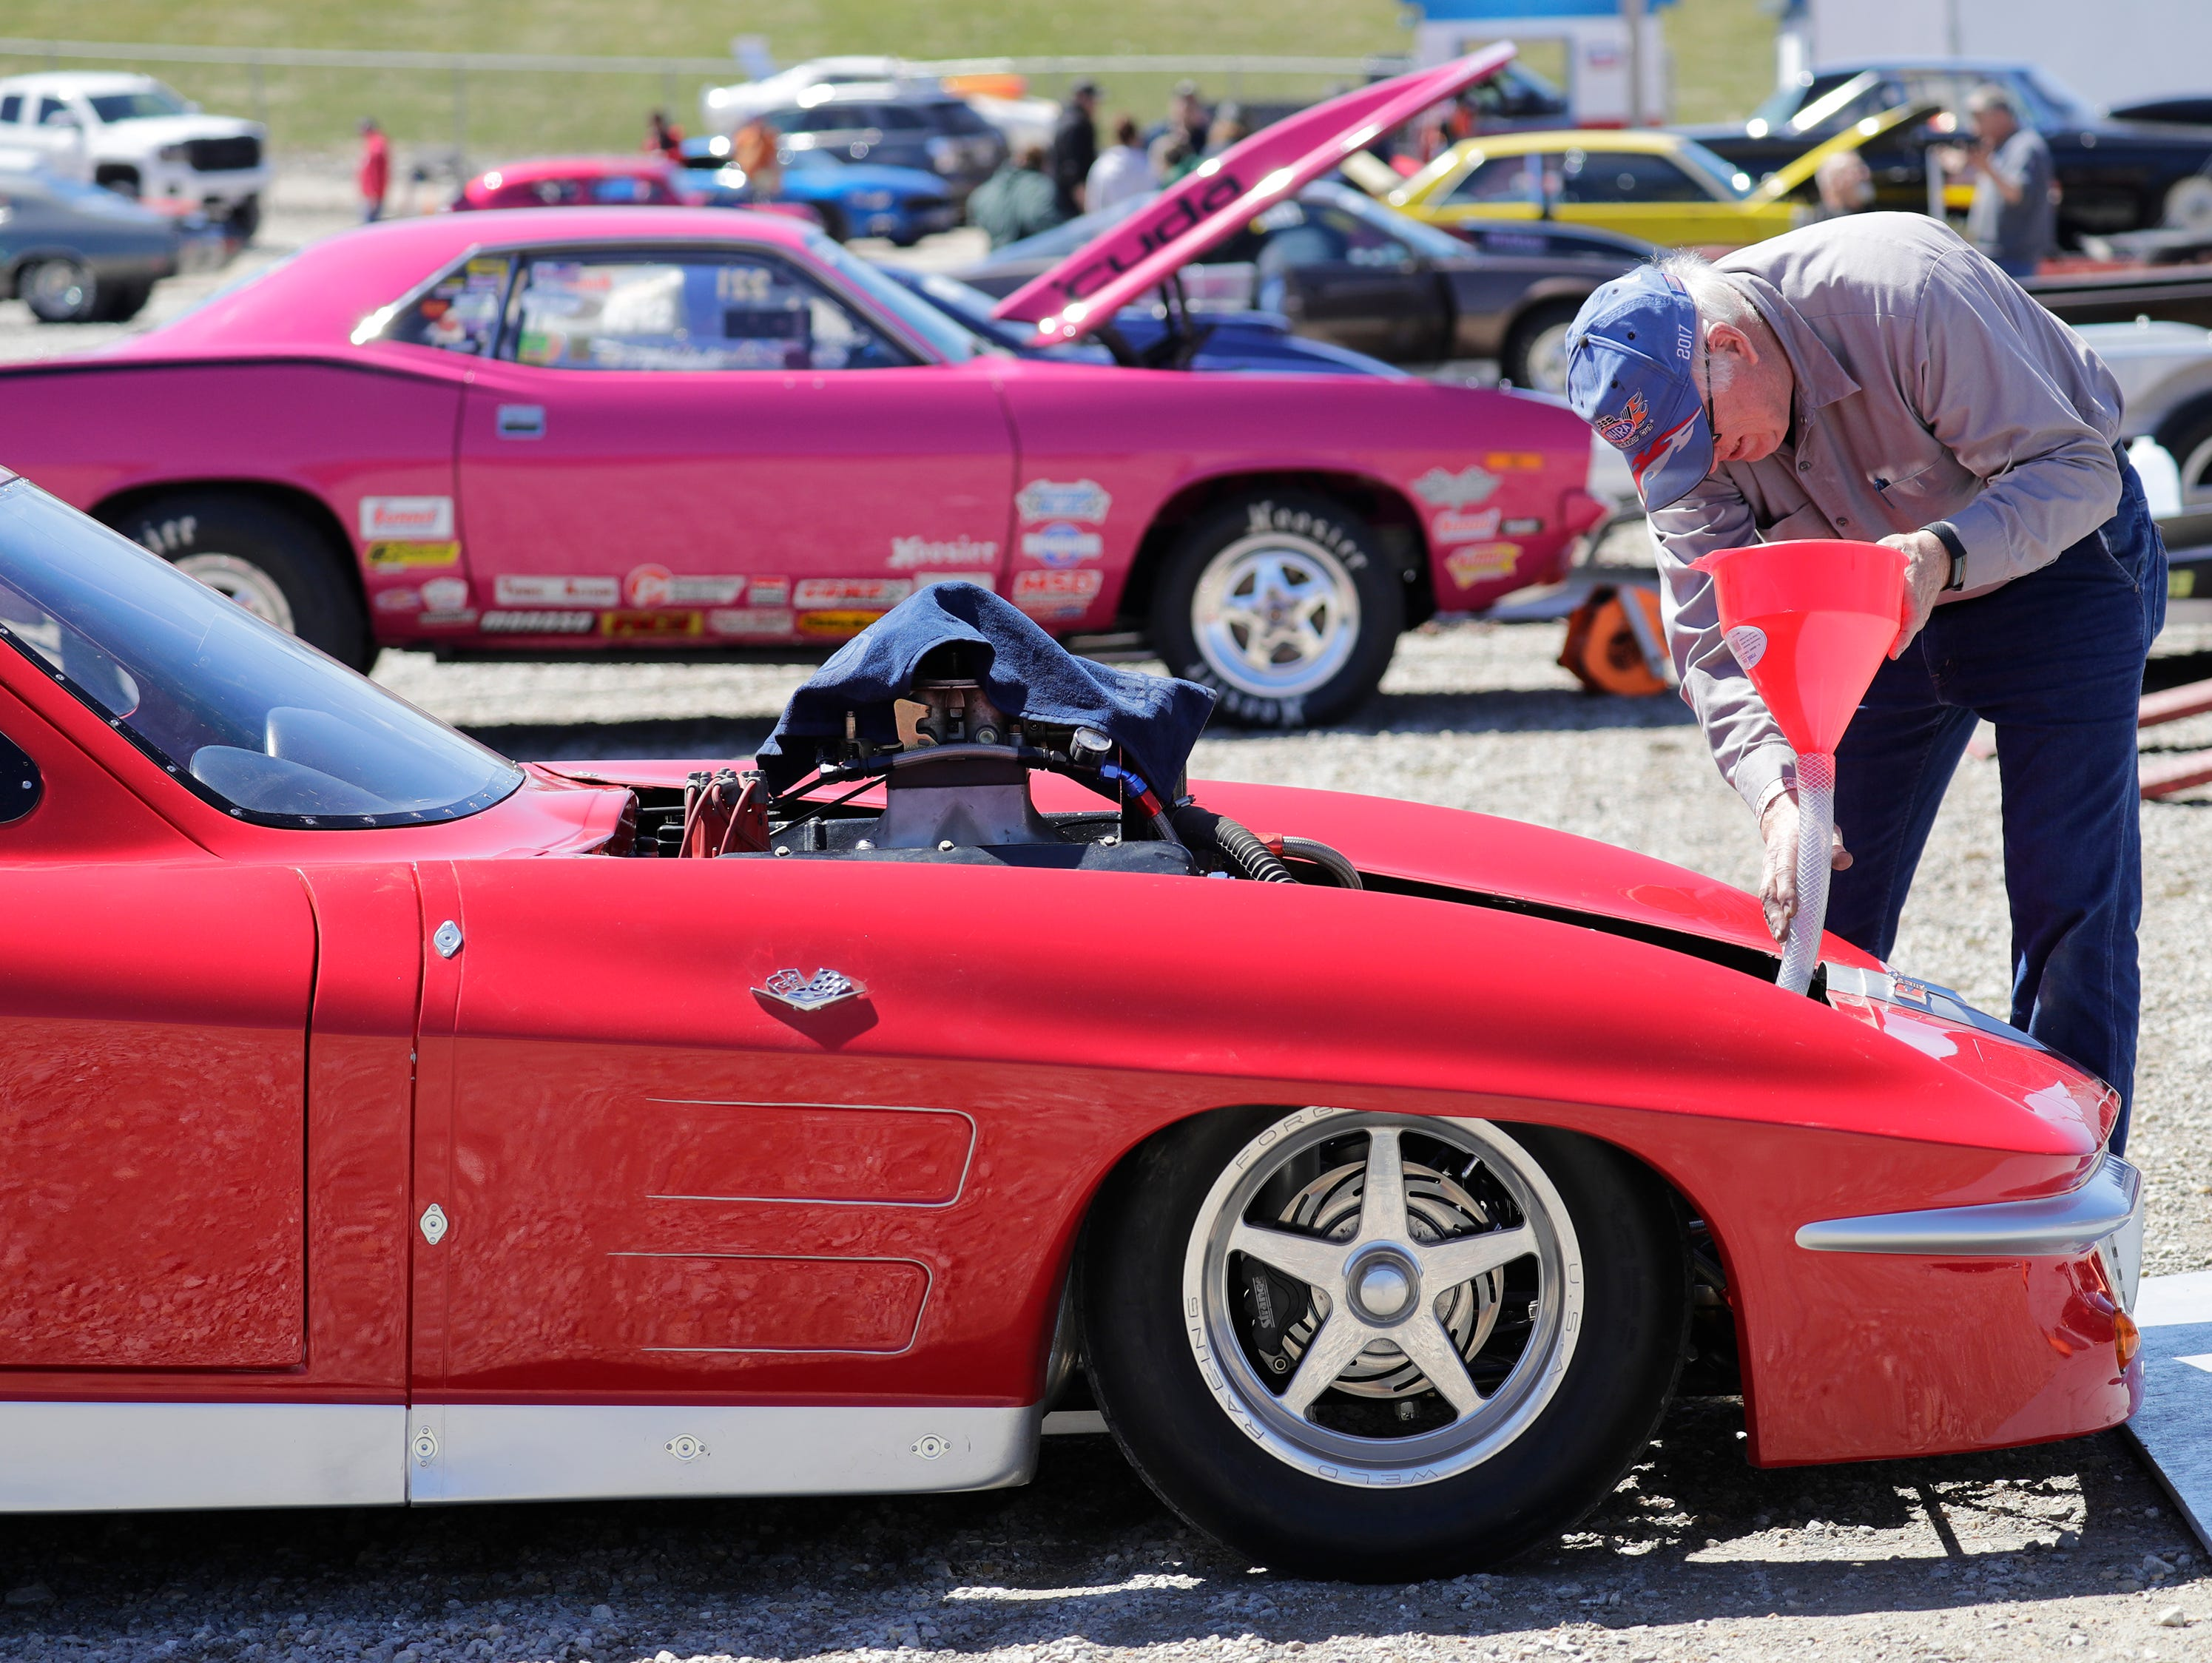 Dean Rentmeester of Fond du lac fuels his 1963 Corvette during the Wisconsin International Raceway Strip Test & Tune event Saturday, April 20, 2019, in Kaukauna, Wis. Drivers spent the day getting safety inspections, tune ups and test runs on the track for the upcoming season.